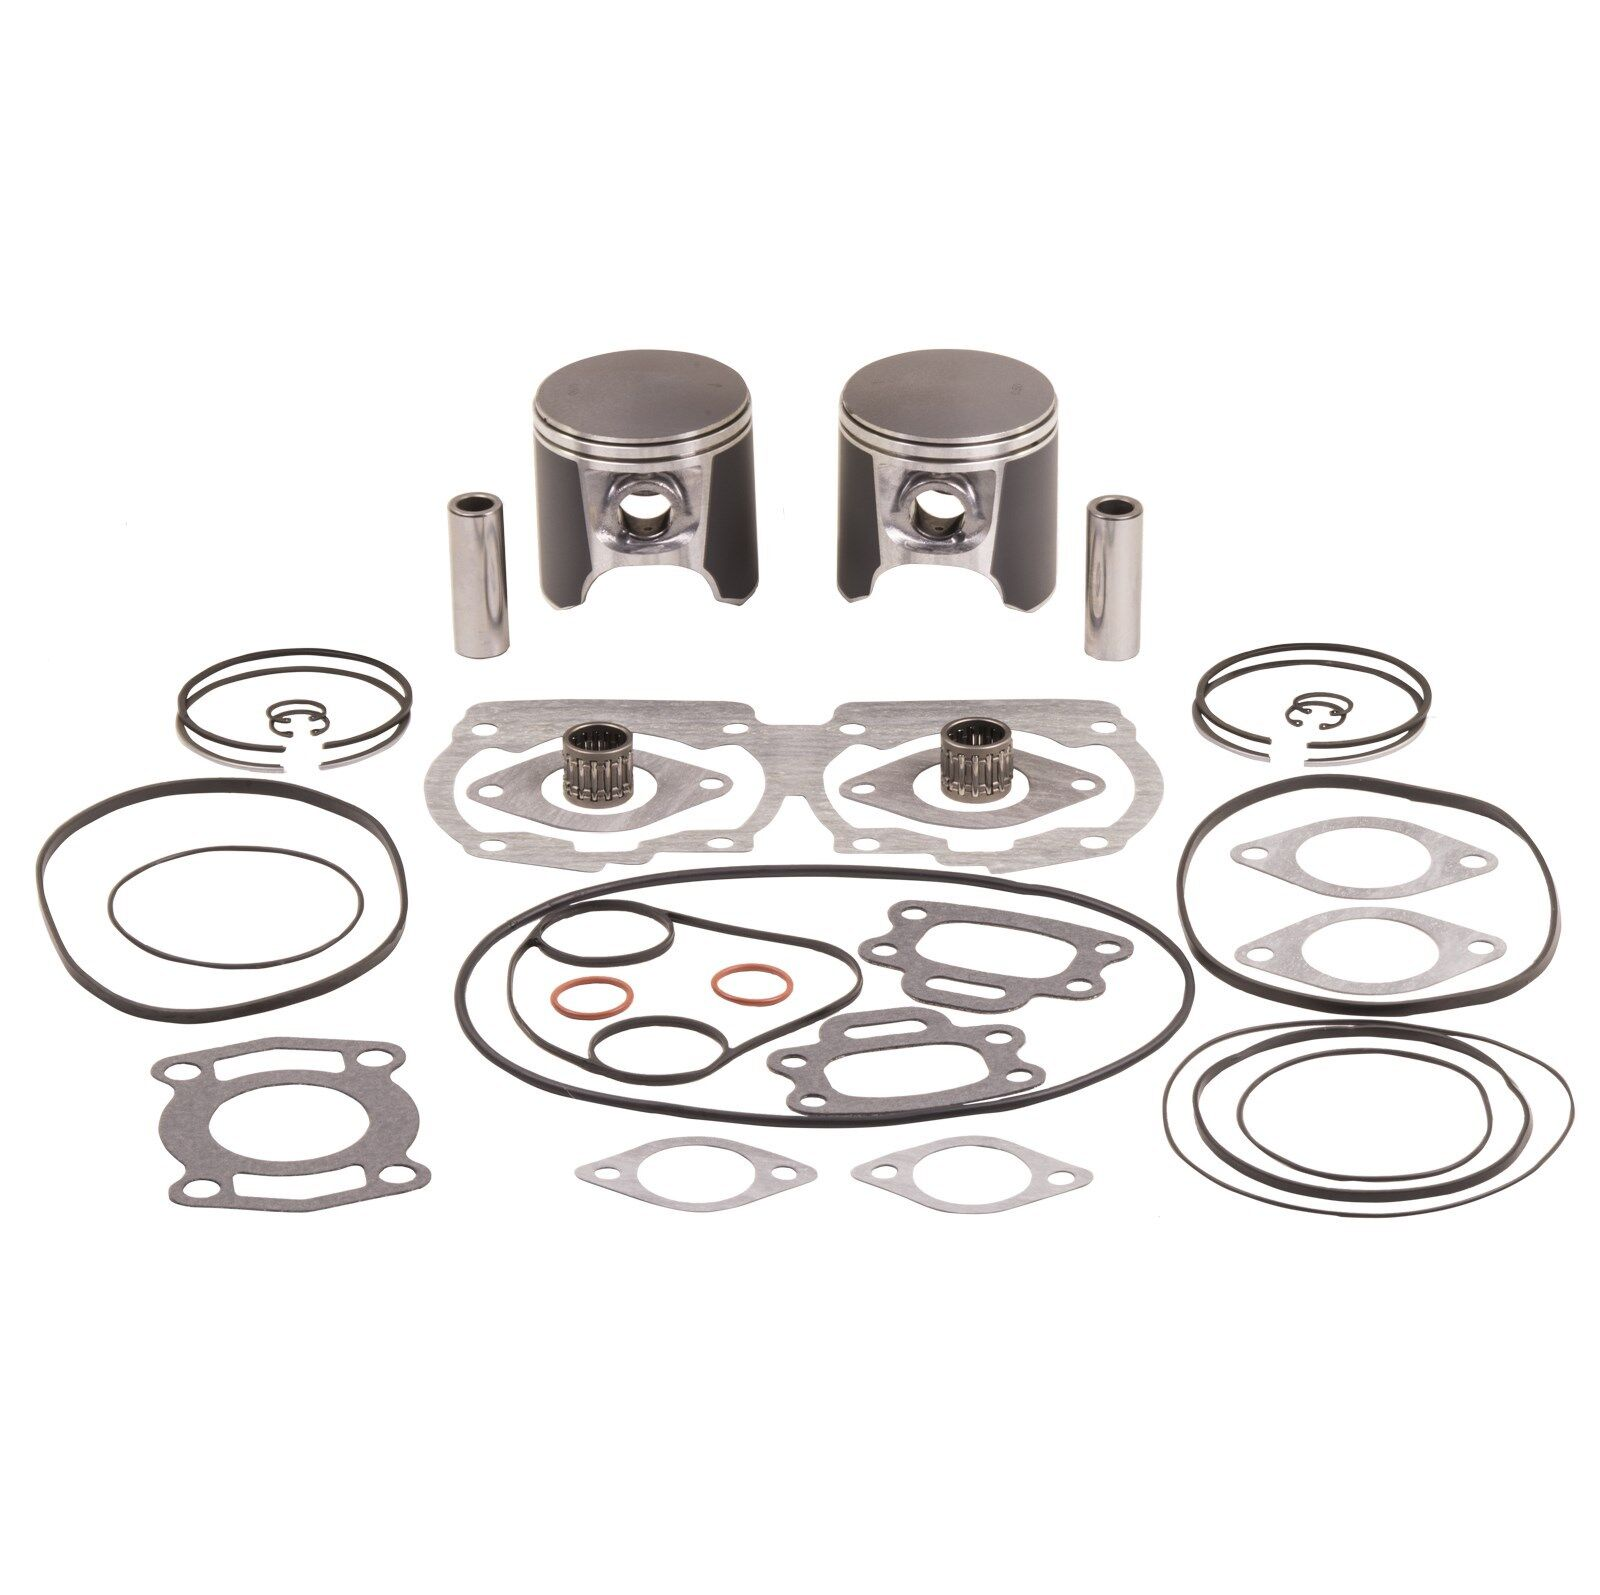 Cadillac 368 425 472 500 Mild Performance Camshaft Lifter Kit 1968-84